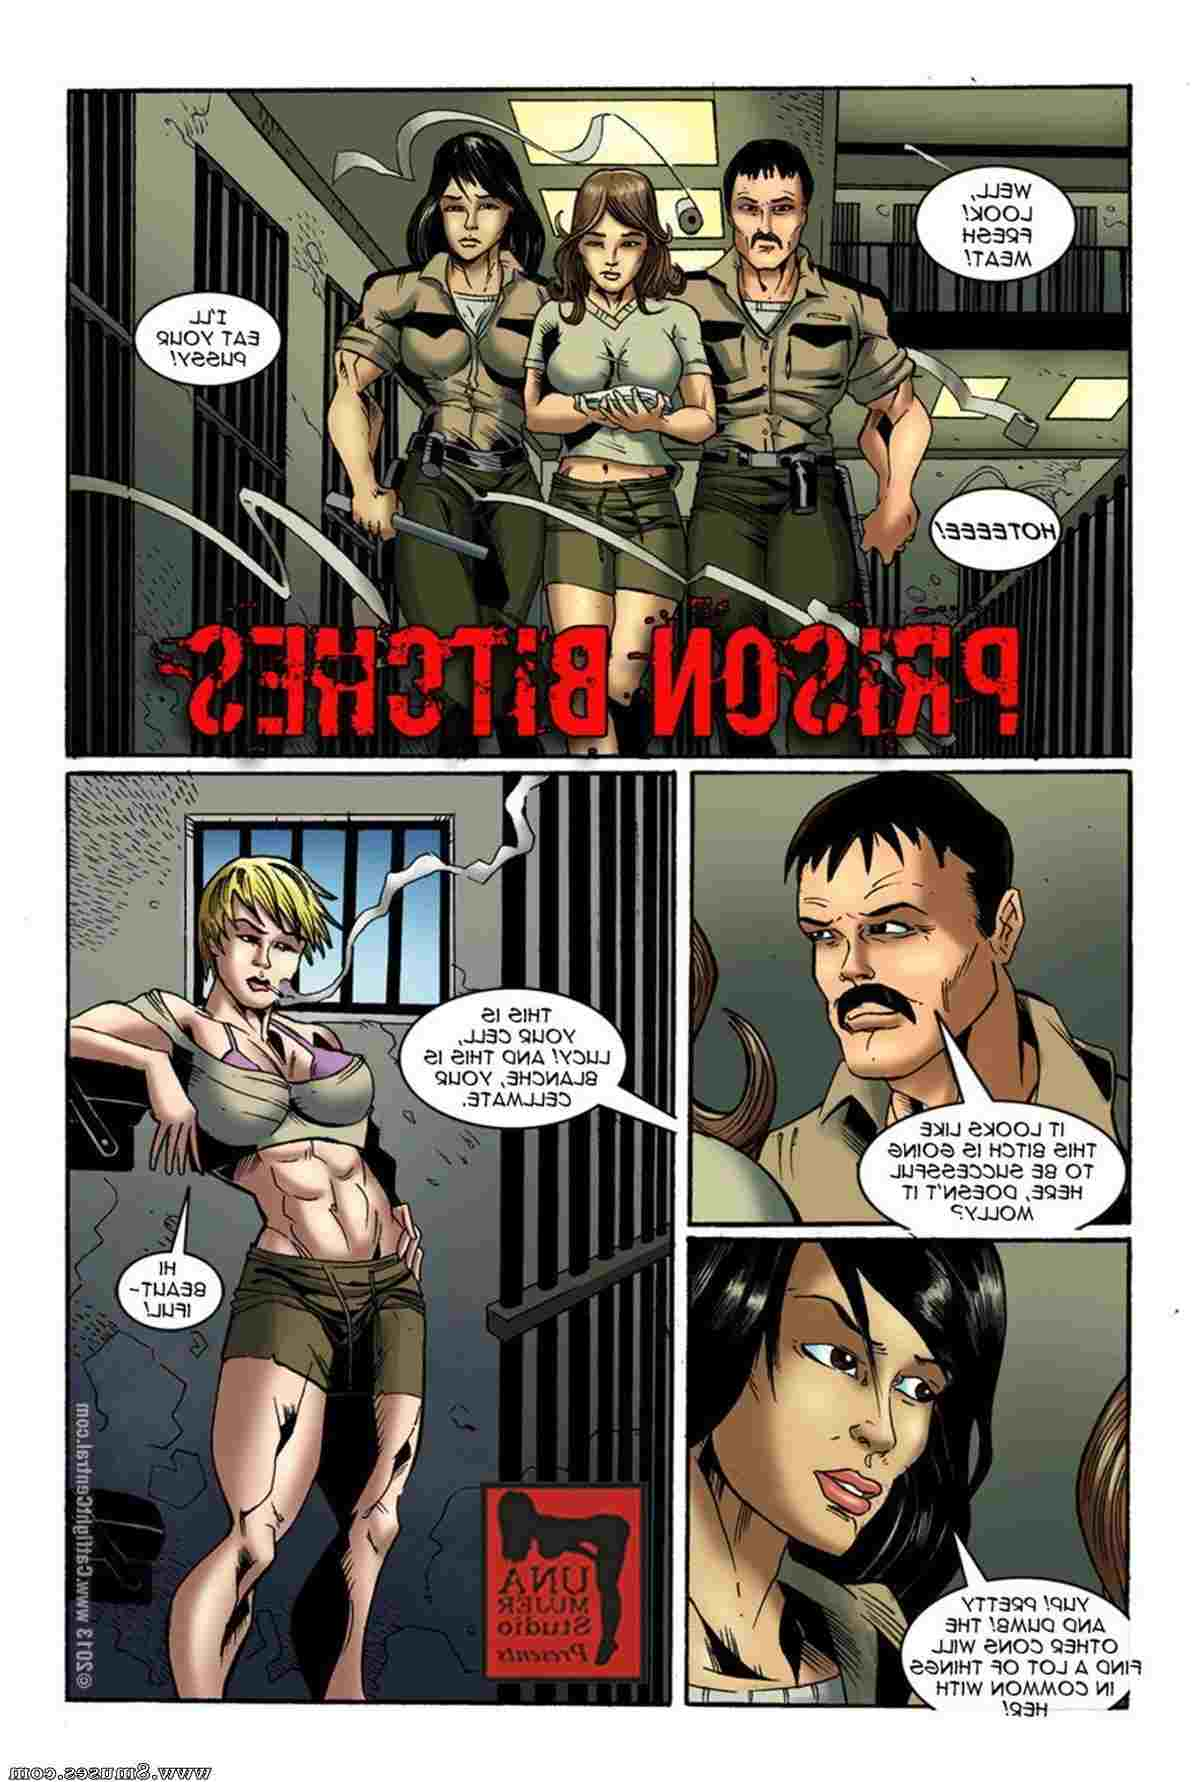 Central-Comics/Catfight-Central/Prison-Bitches Prison_Bitches__8muses_-_Sex_and_Porn_Comics.jpg